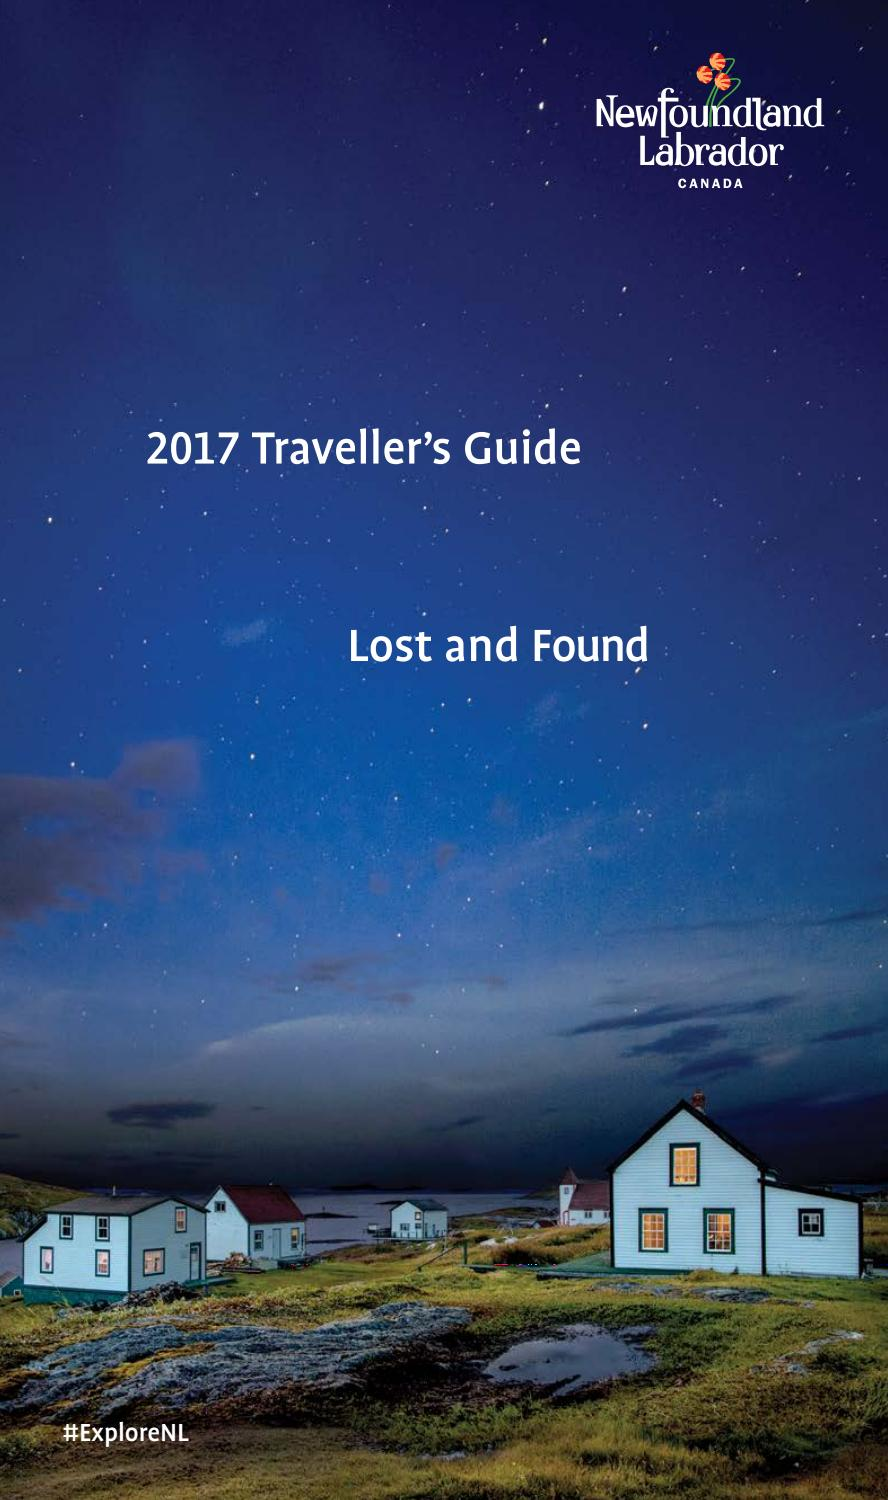 Newfoundland Labrador Traveller S Guide 2017 By Newfoundland And Labrador Tourism Issuu - Garden Furniture Clearance Tickled Trout